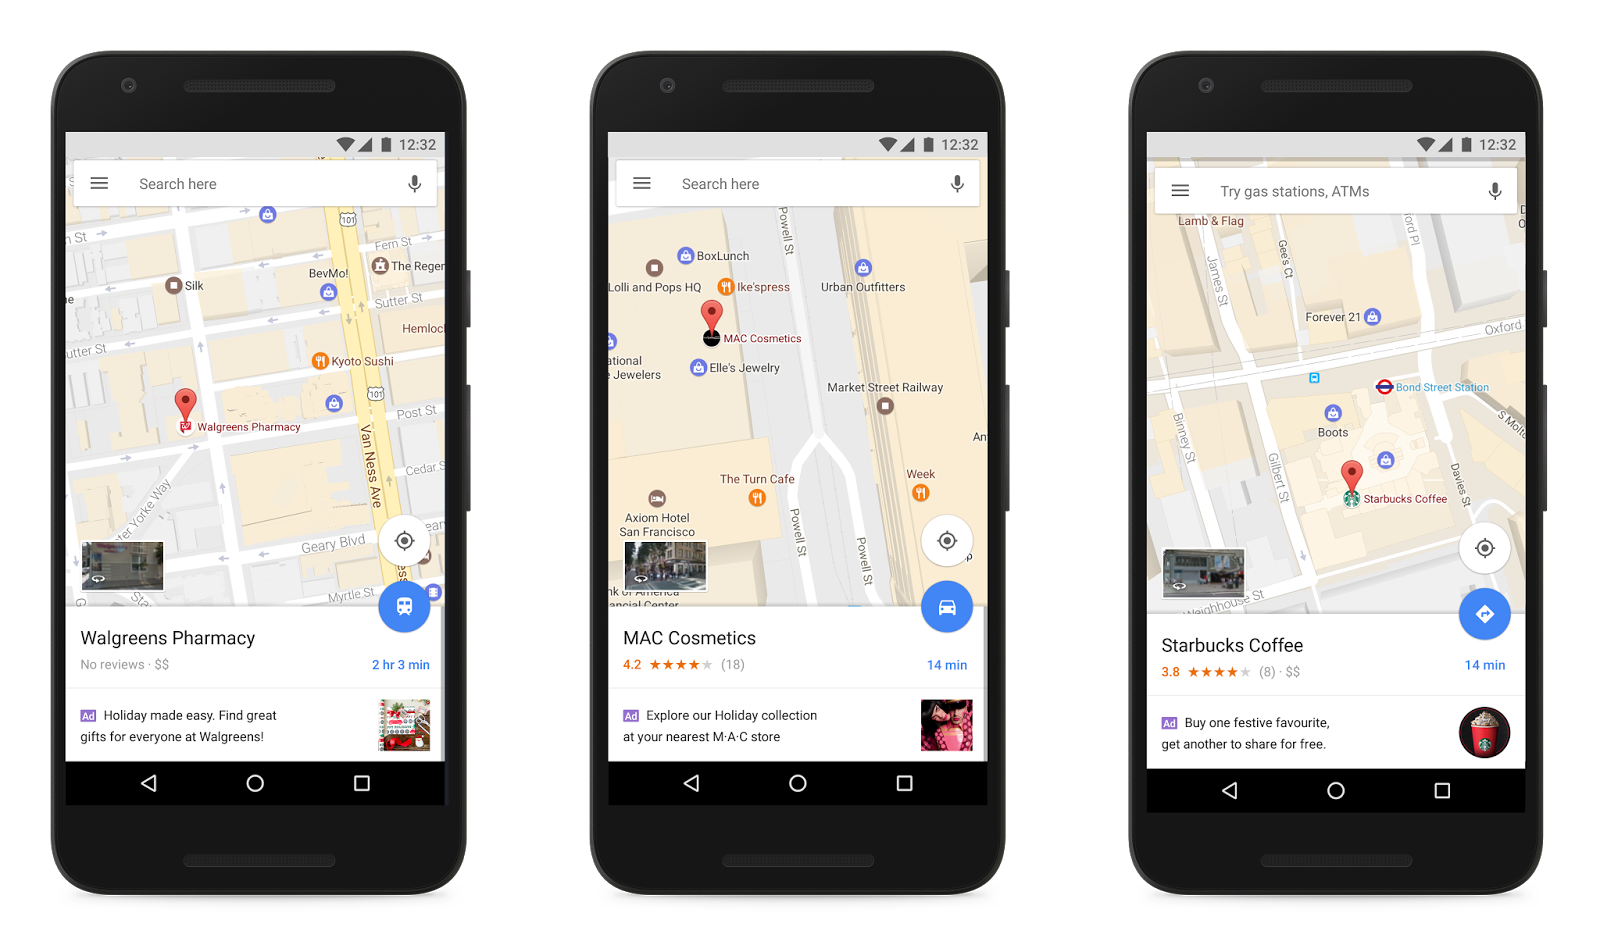 New Local Search Opportunities with Google Maps' Promoted Places